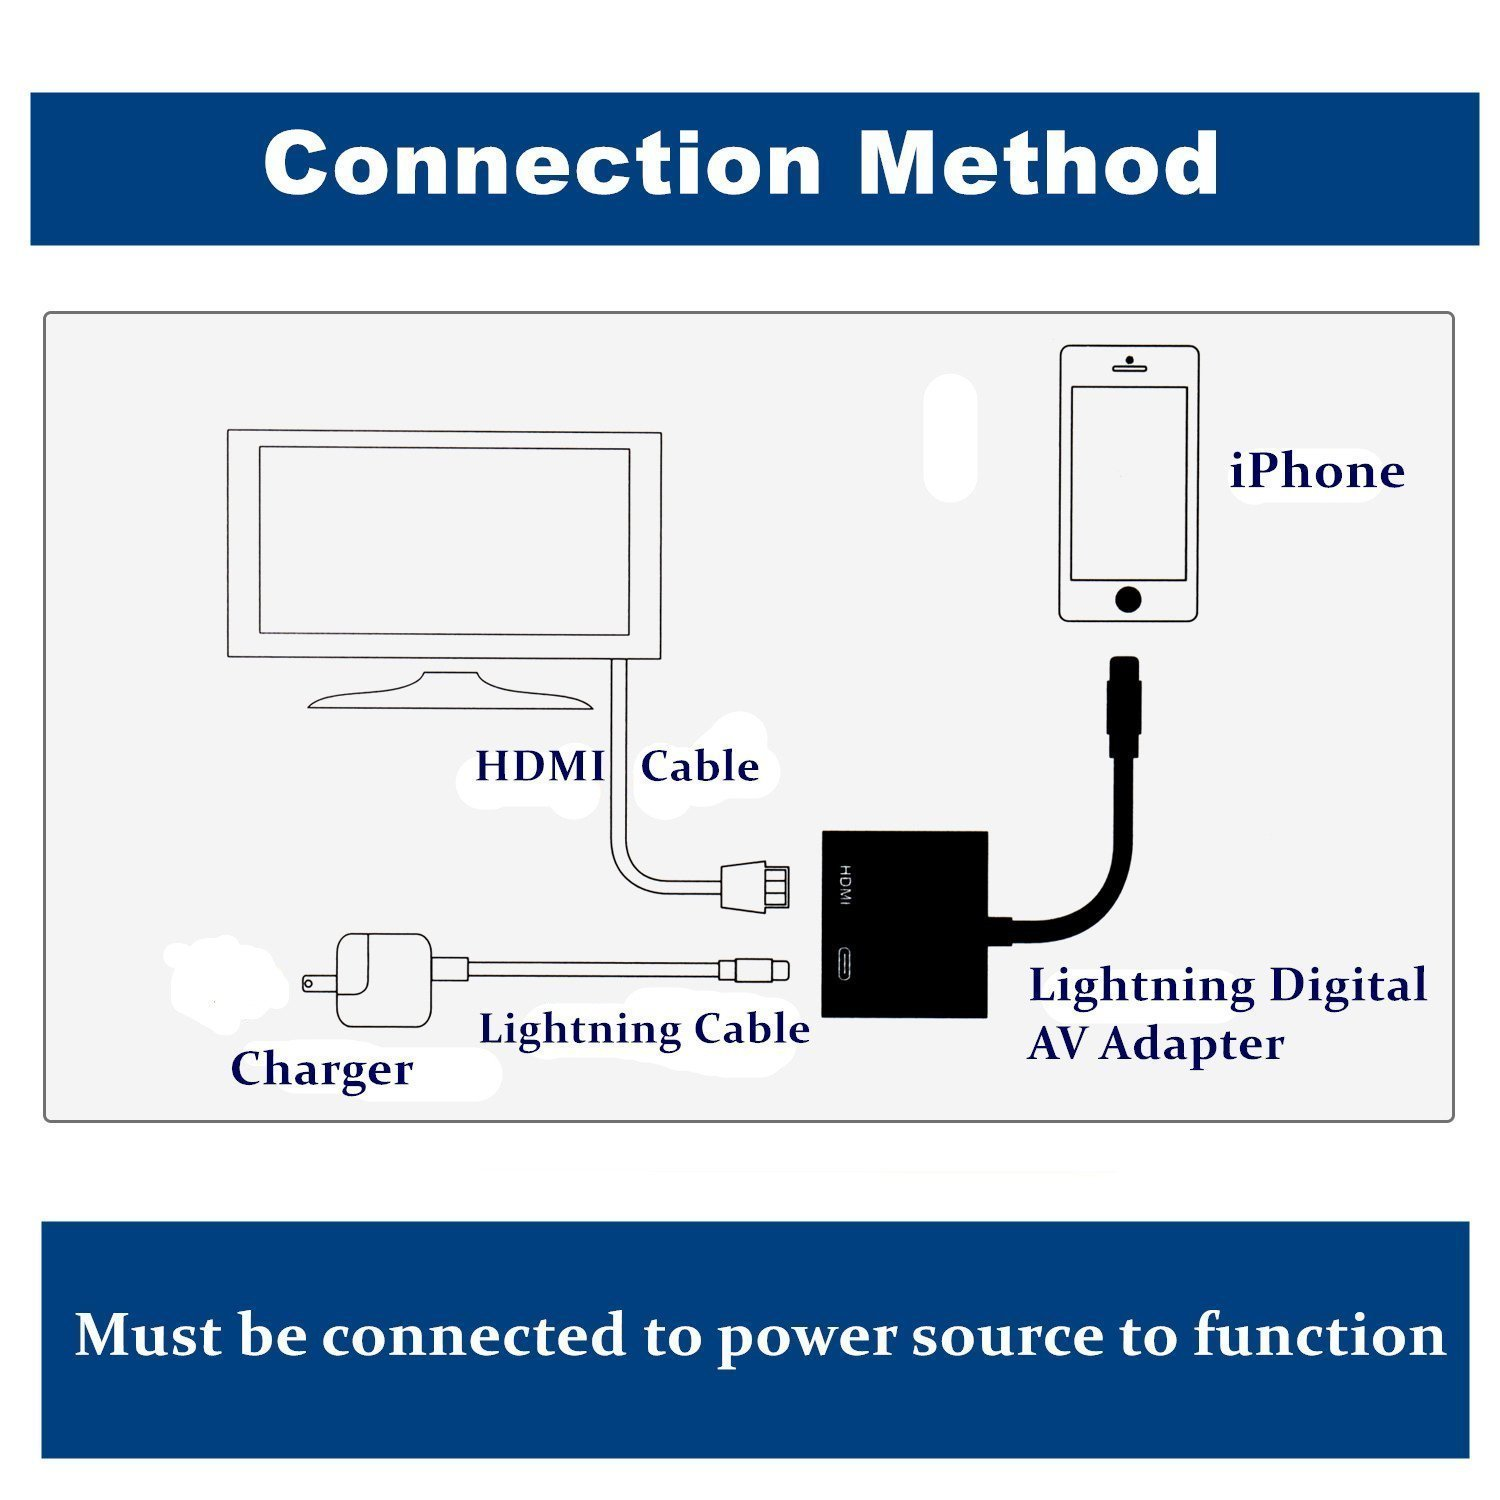 Ightning To Hdmi Lightning Digital Av Adapter Cable Wiring Diagram Charging And 2 In 1 Adaptercompatible With Ipadairiphone Computers